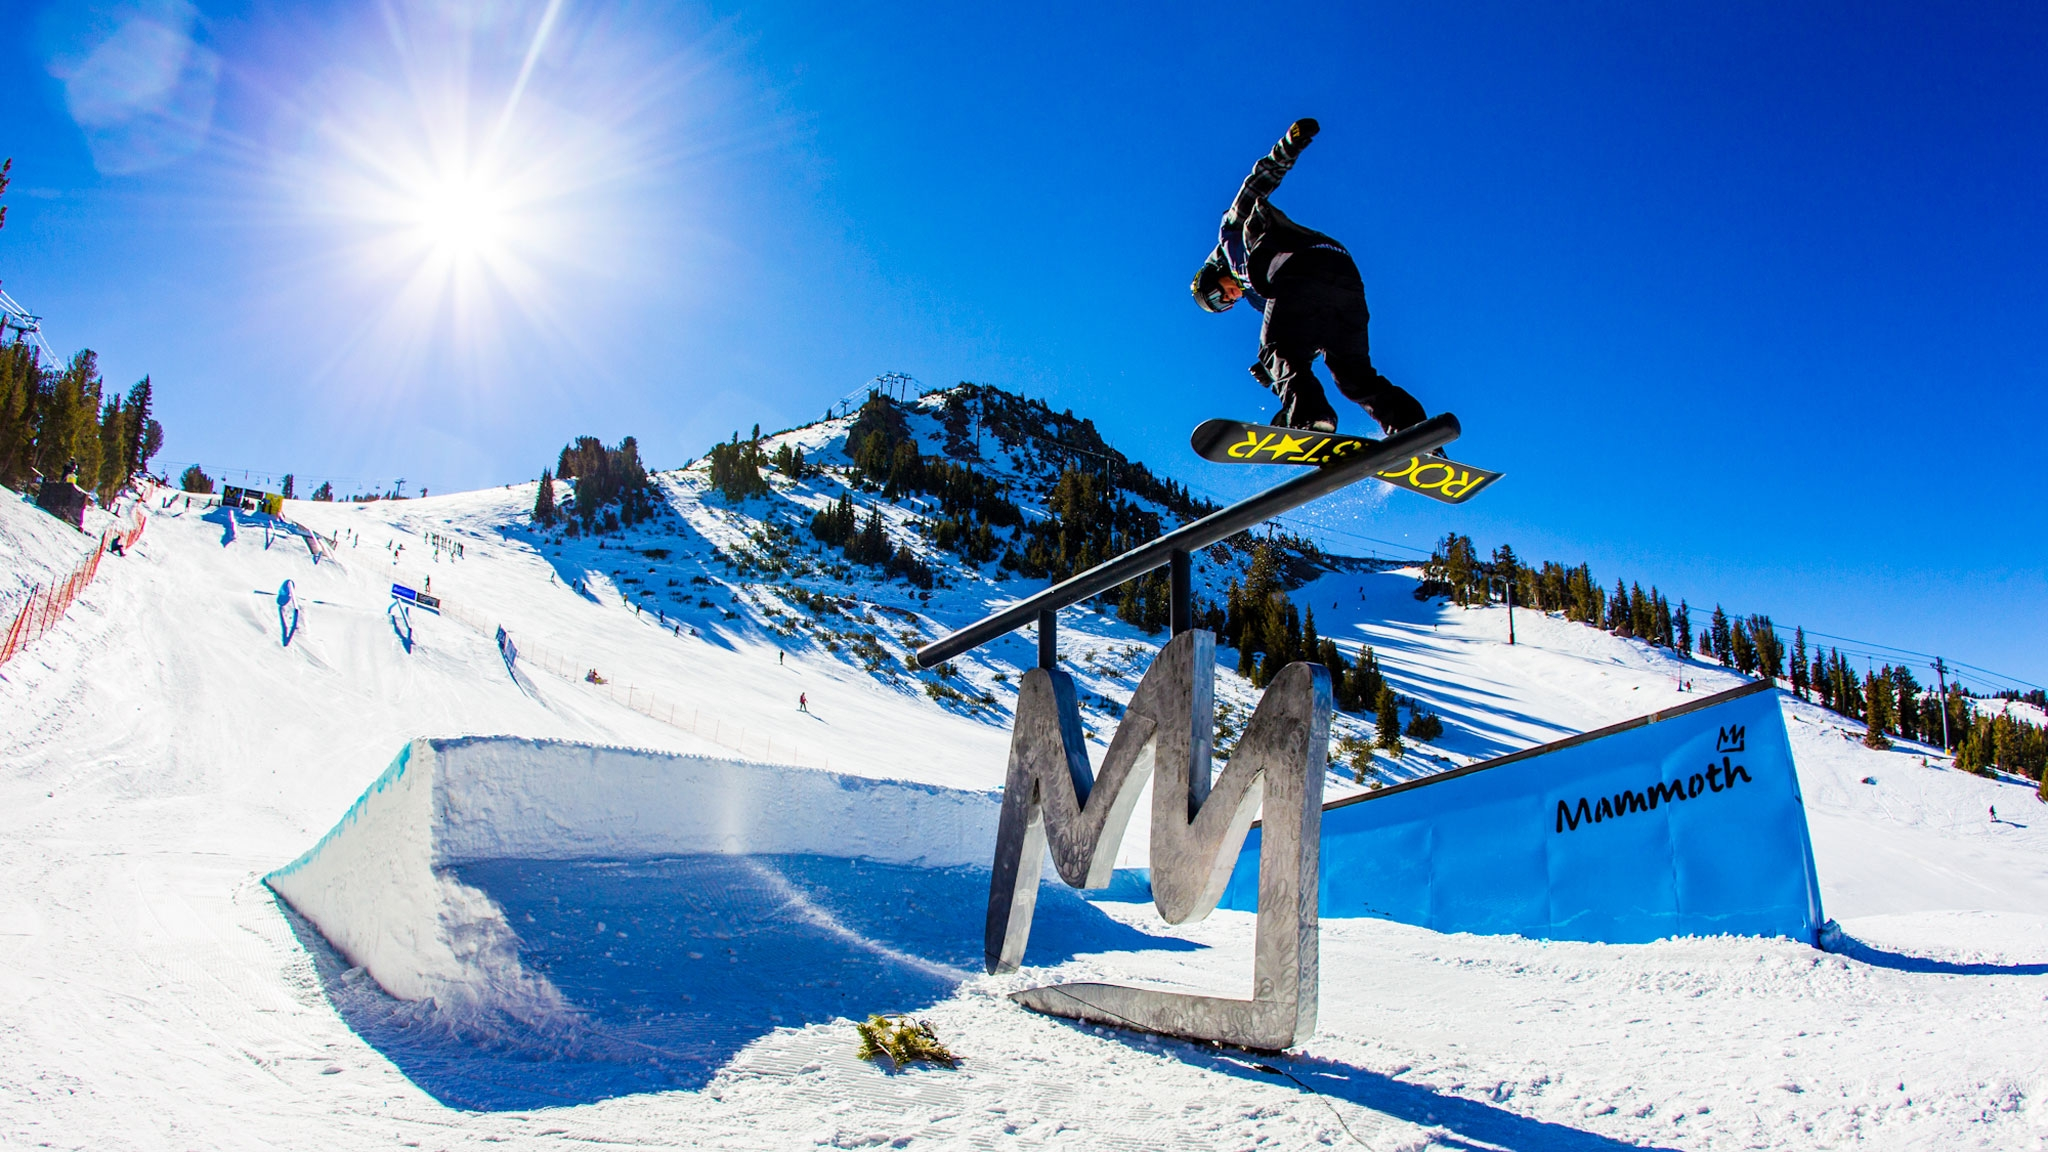 winter olympics snowboarding desktop wallpaper 733